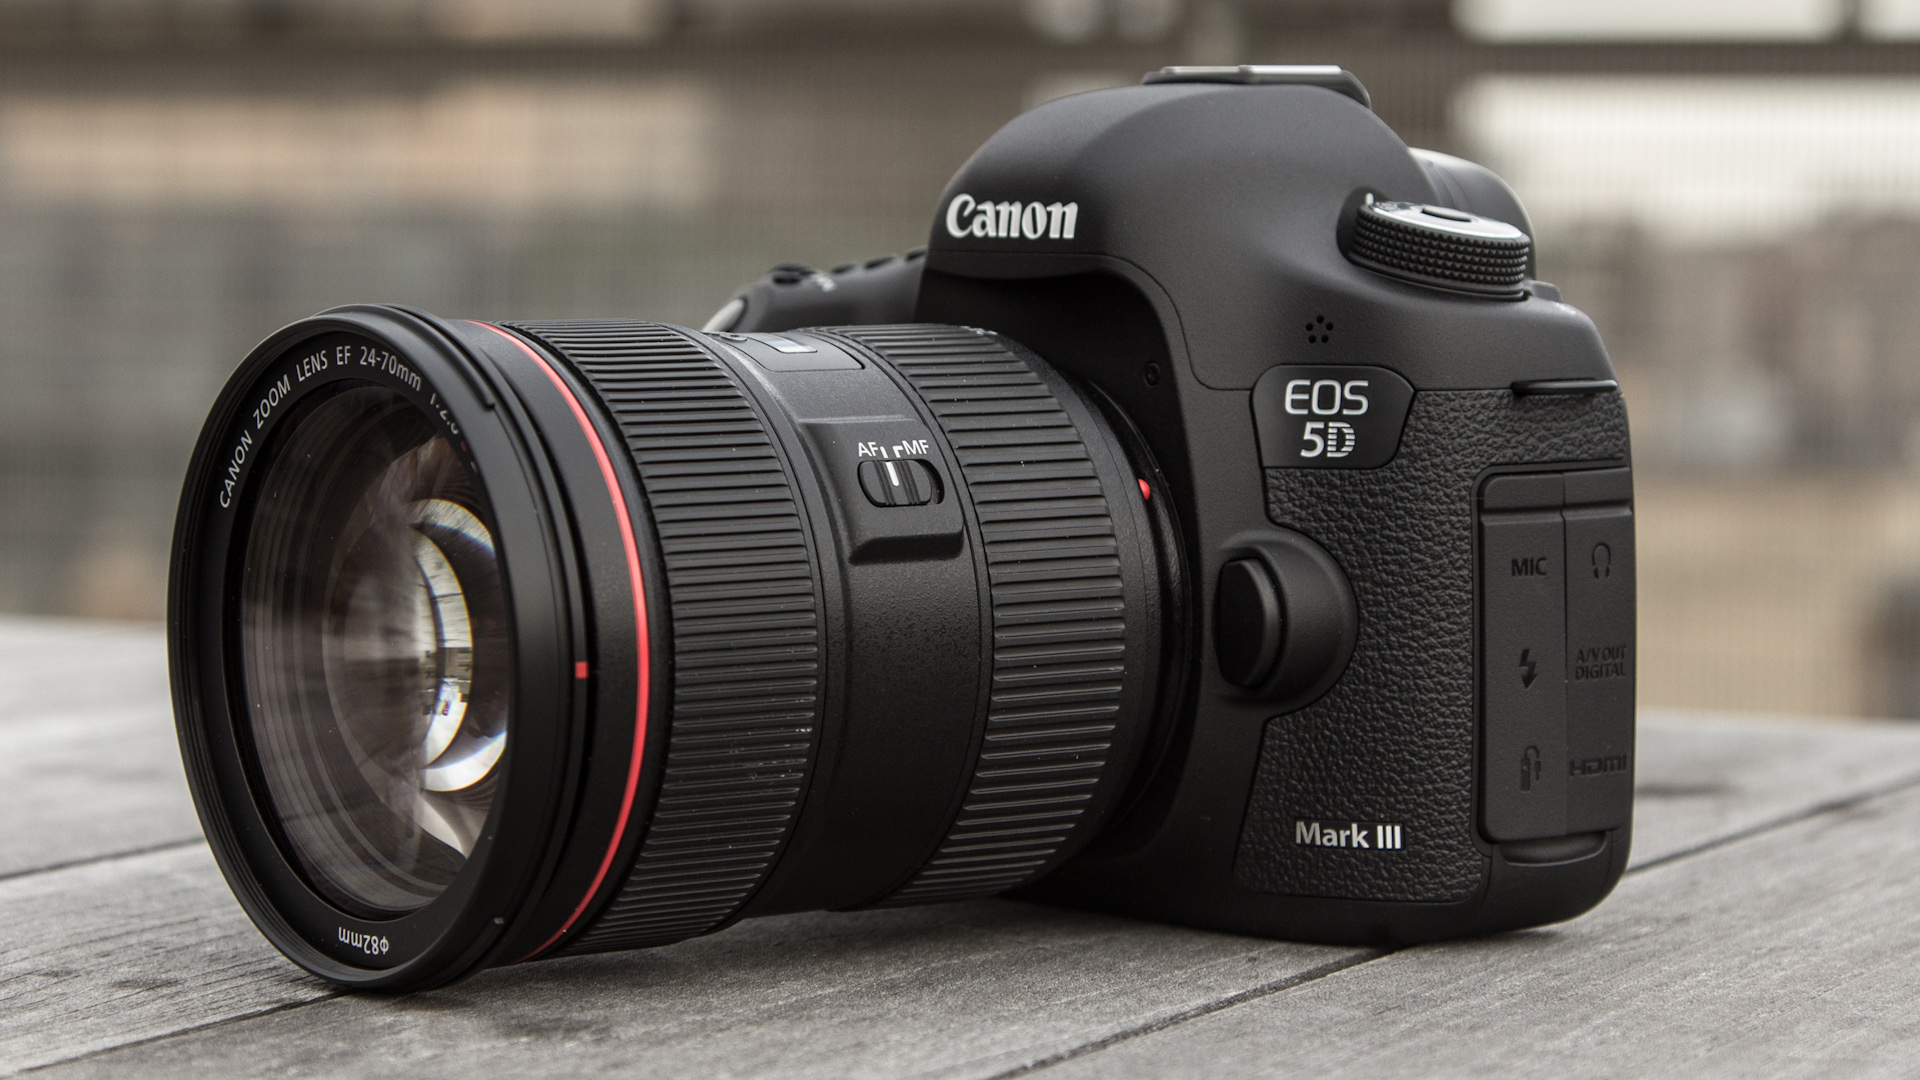 A DSLR offers video versatility and flexibility that can't be beat by a mobile device. Availability of lenses, accessories, modes and upgrades is what made ...